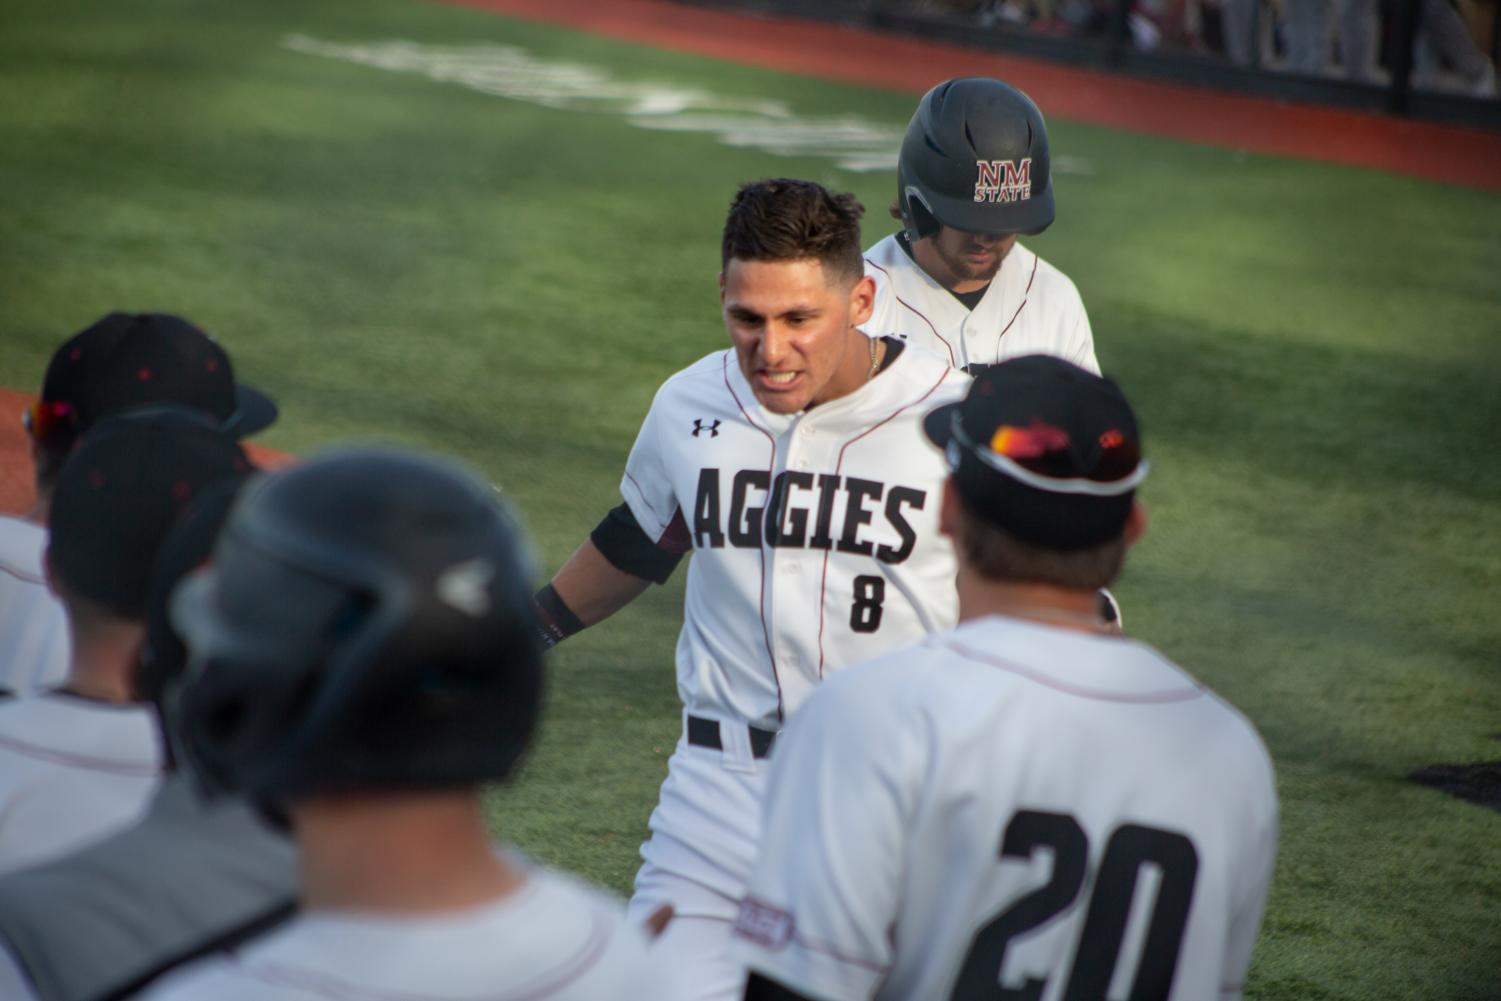 Joey Ortiz celebrates his first-inning homer in NM State's dominant season-opening victory over Texas State.